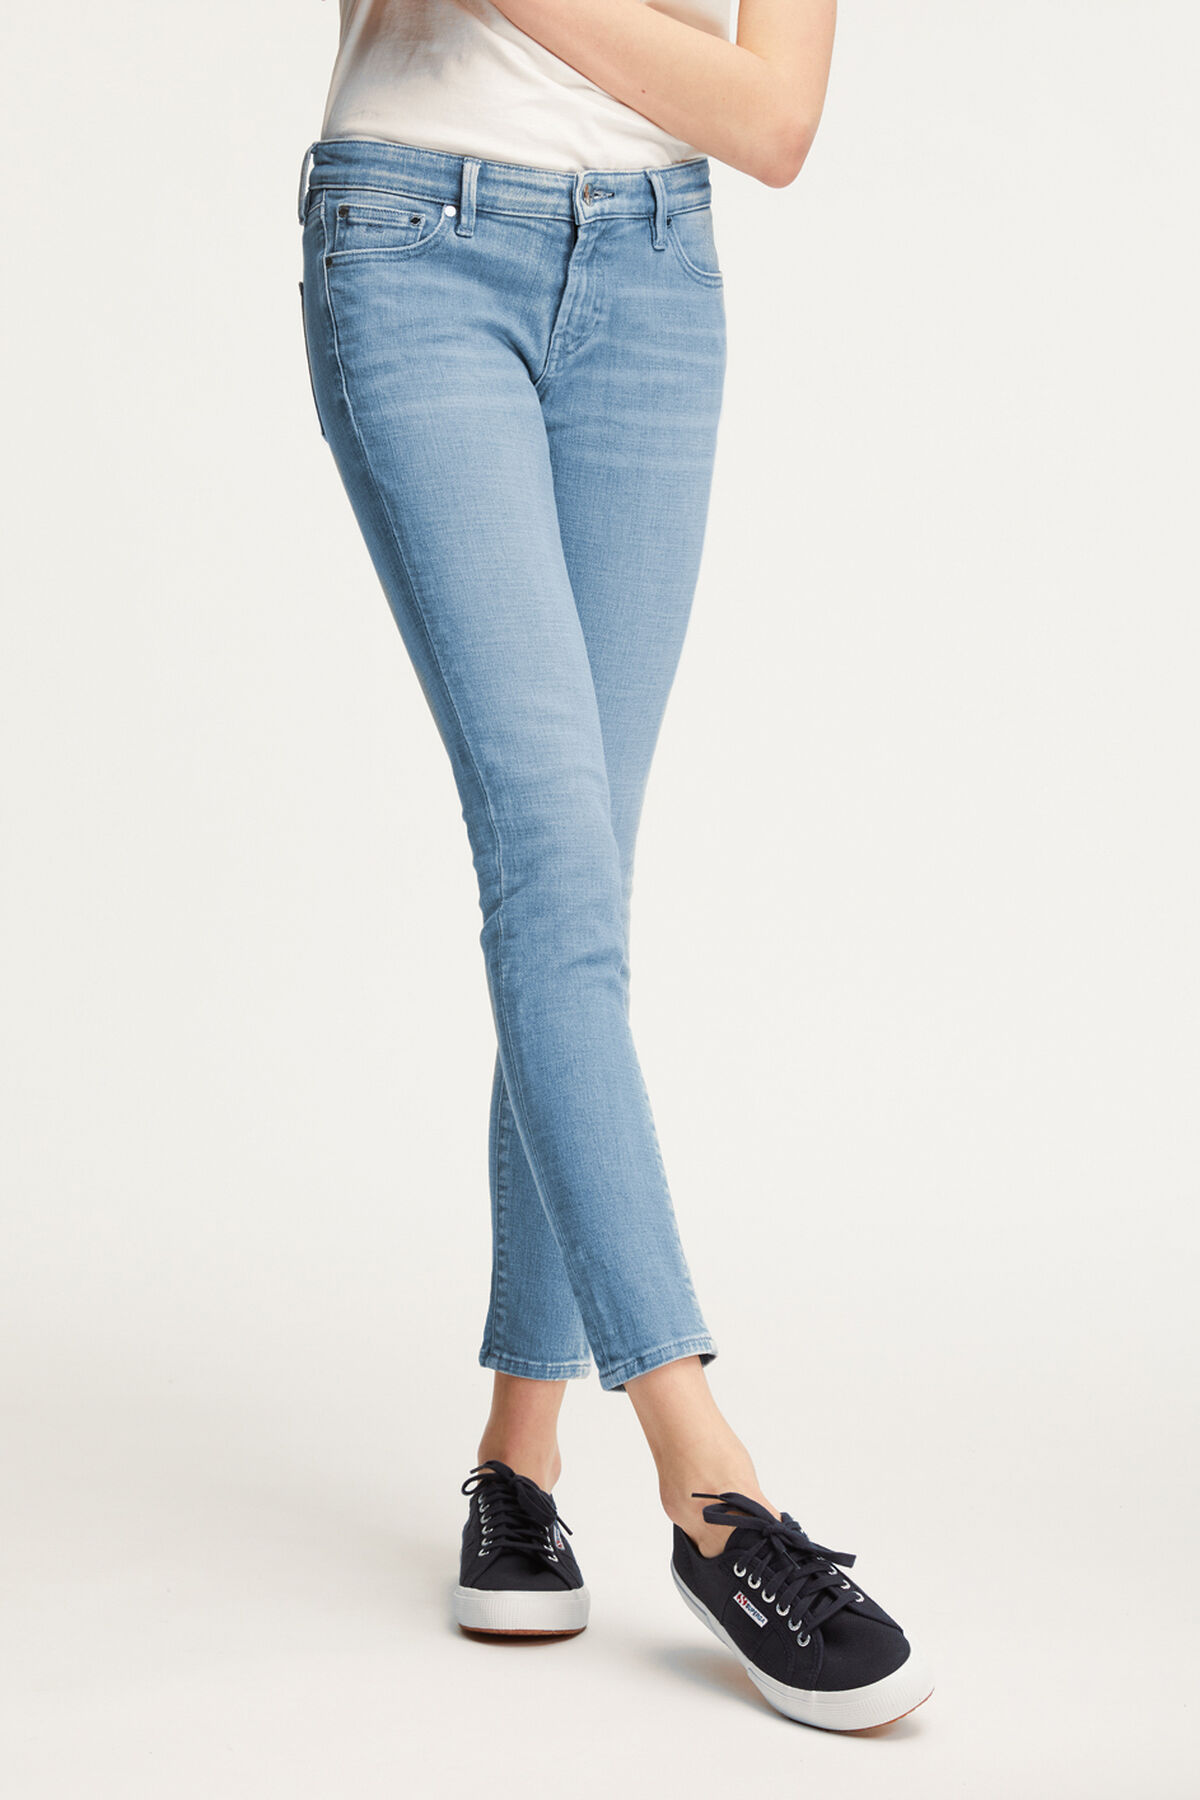 SPRAY Light Blue Denim - Mid-rise, Tight Fit